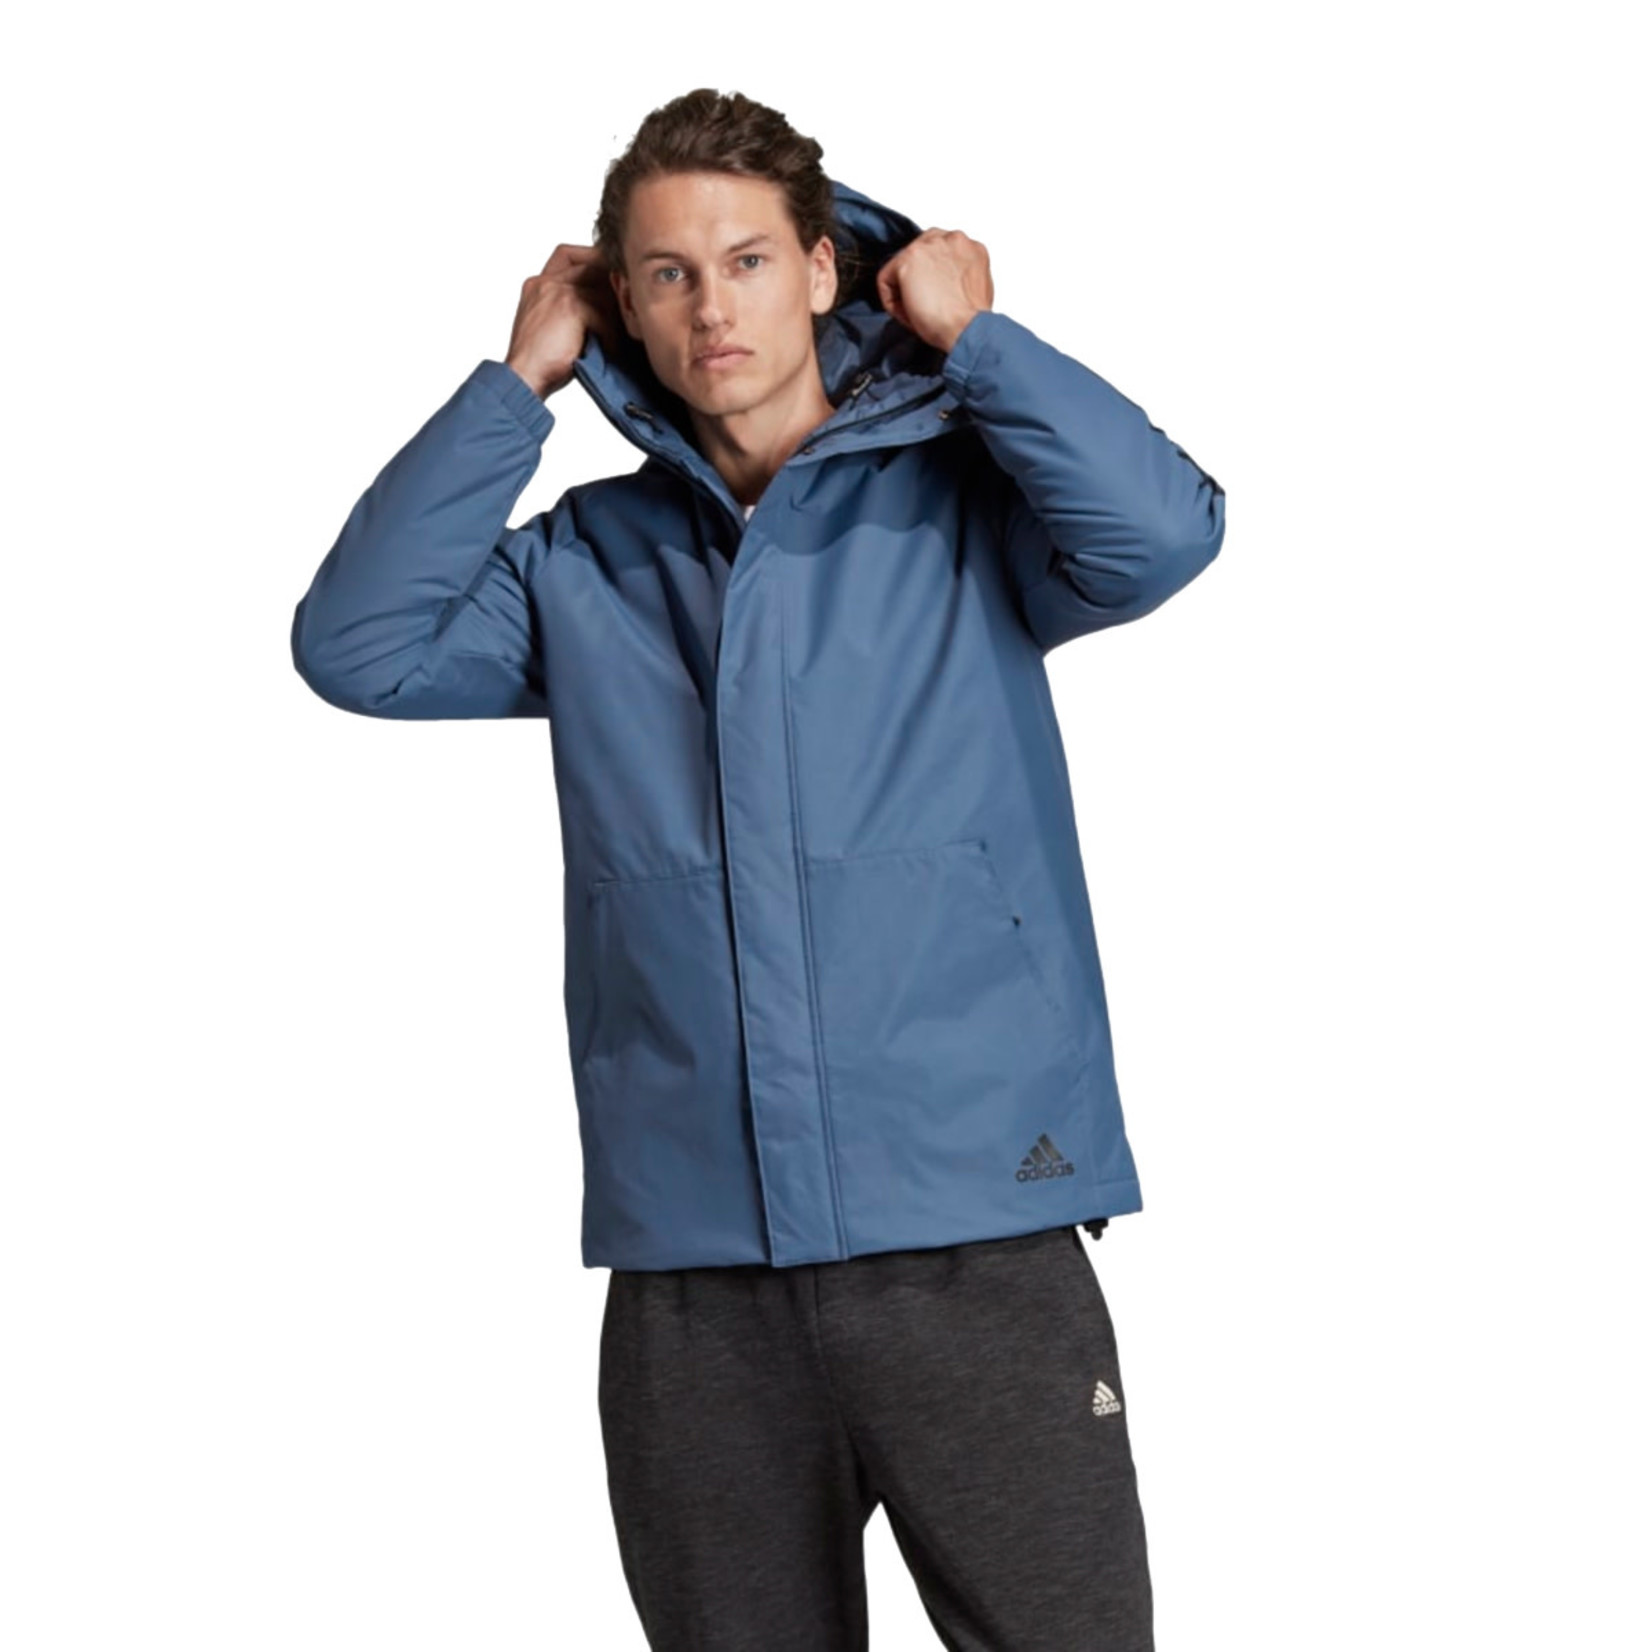 ADIDAS XPLORIC 3-STRIPES JACKET